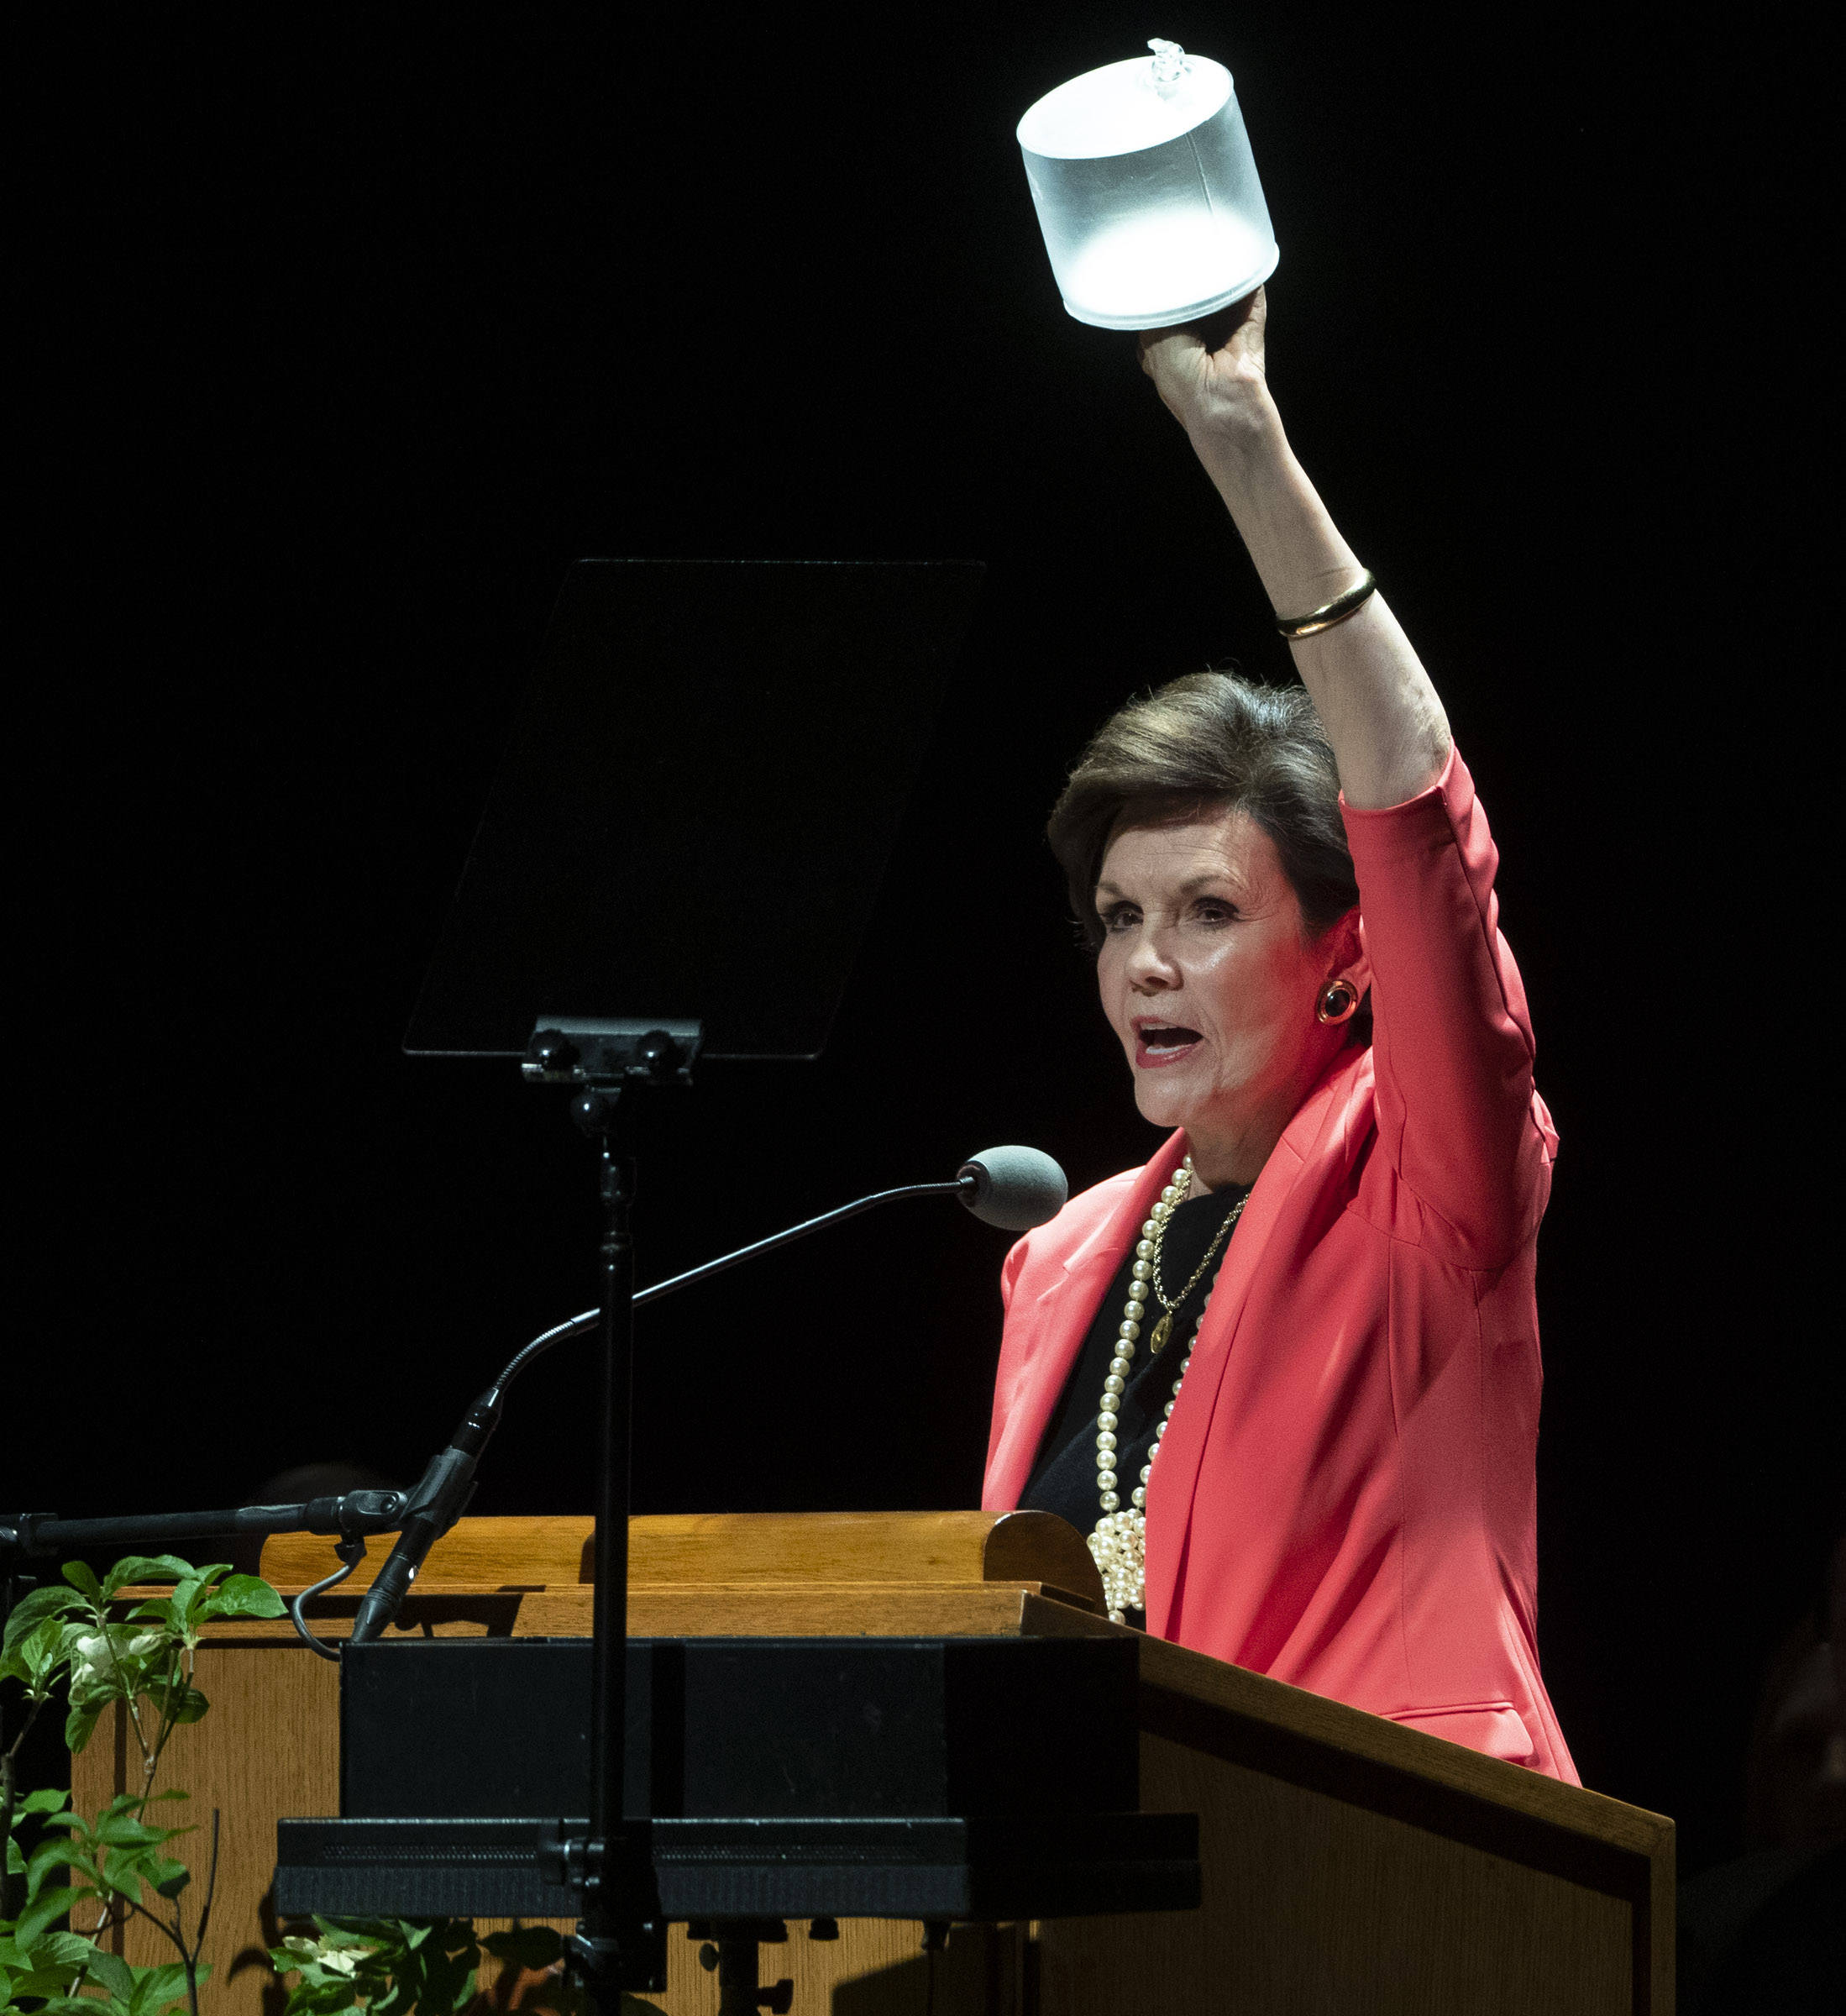 Sister Kristen Oaks, wife of President Dallin H. Oaks, first counselor in the First Presidency of The Church of Jesus Christ of Latter-day Saints, holds a lantern as she talks to youth about the Light of Jesus Christ during a devotional at the Interstake Center on the Oakland California Temple grounds on Saturday, June 15, 2019.